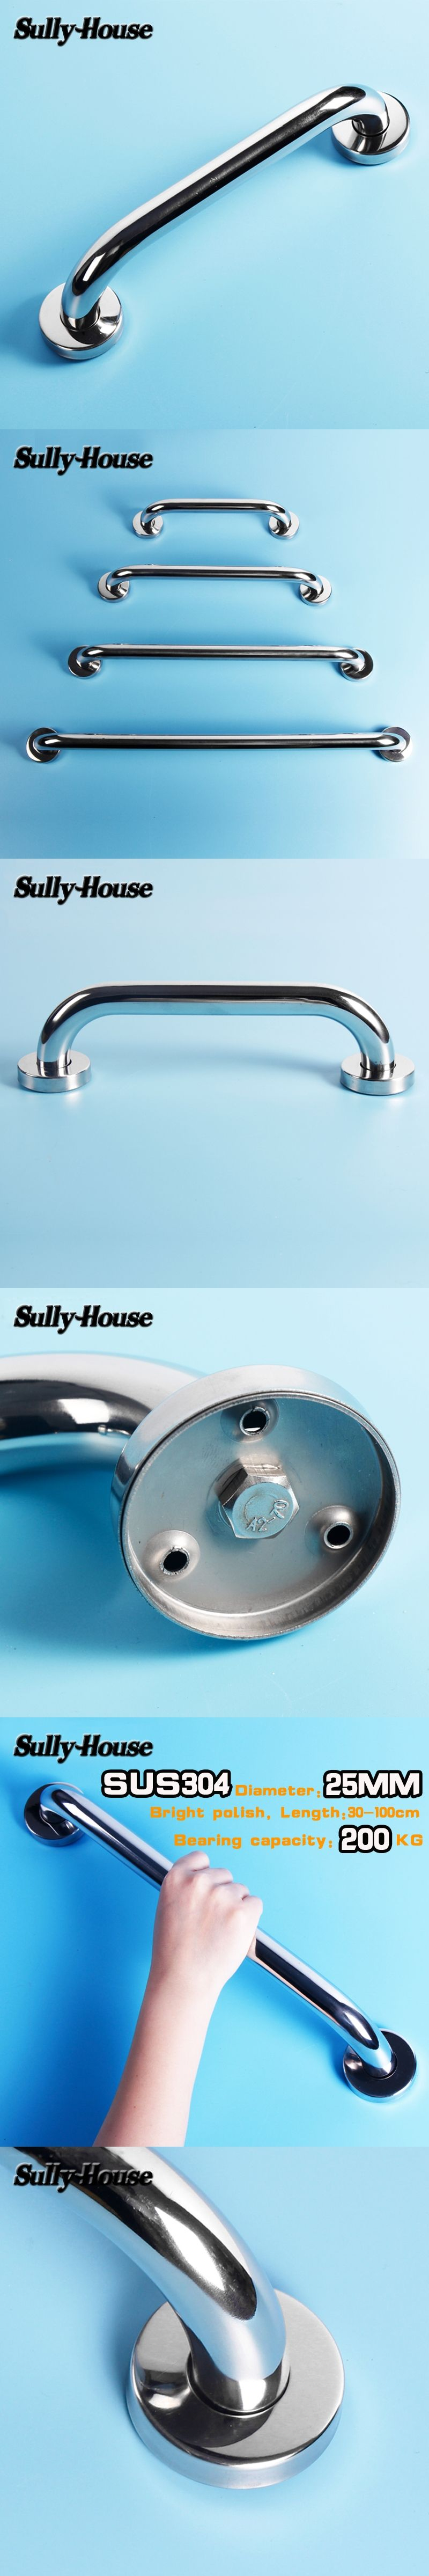 Sully House 304 Stainless Steel Bathroom Safety Handrail, Wall Mount ...